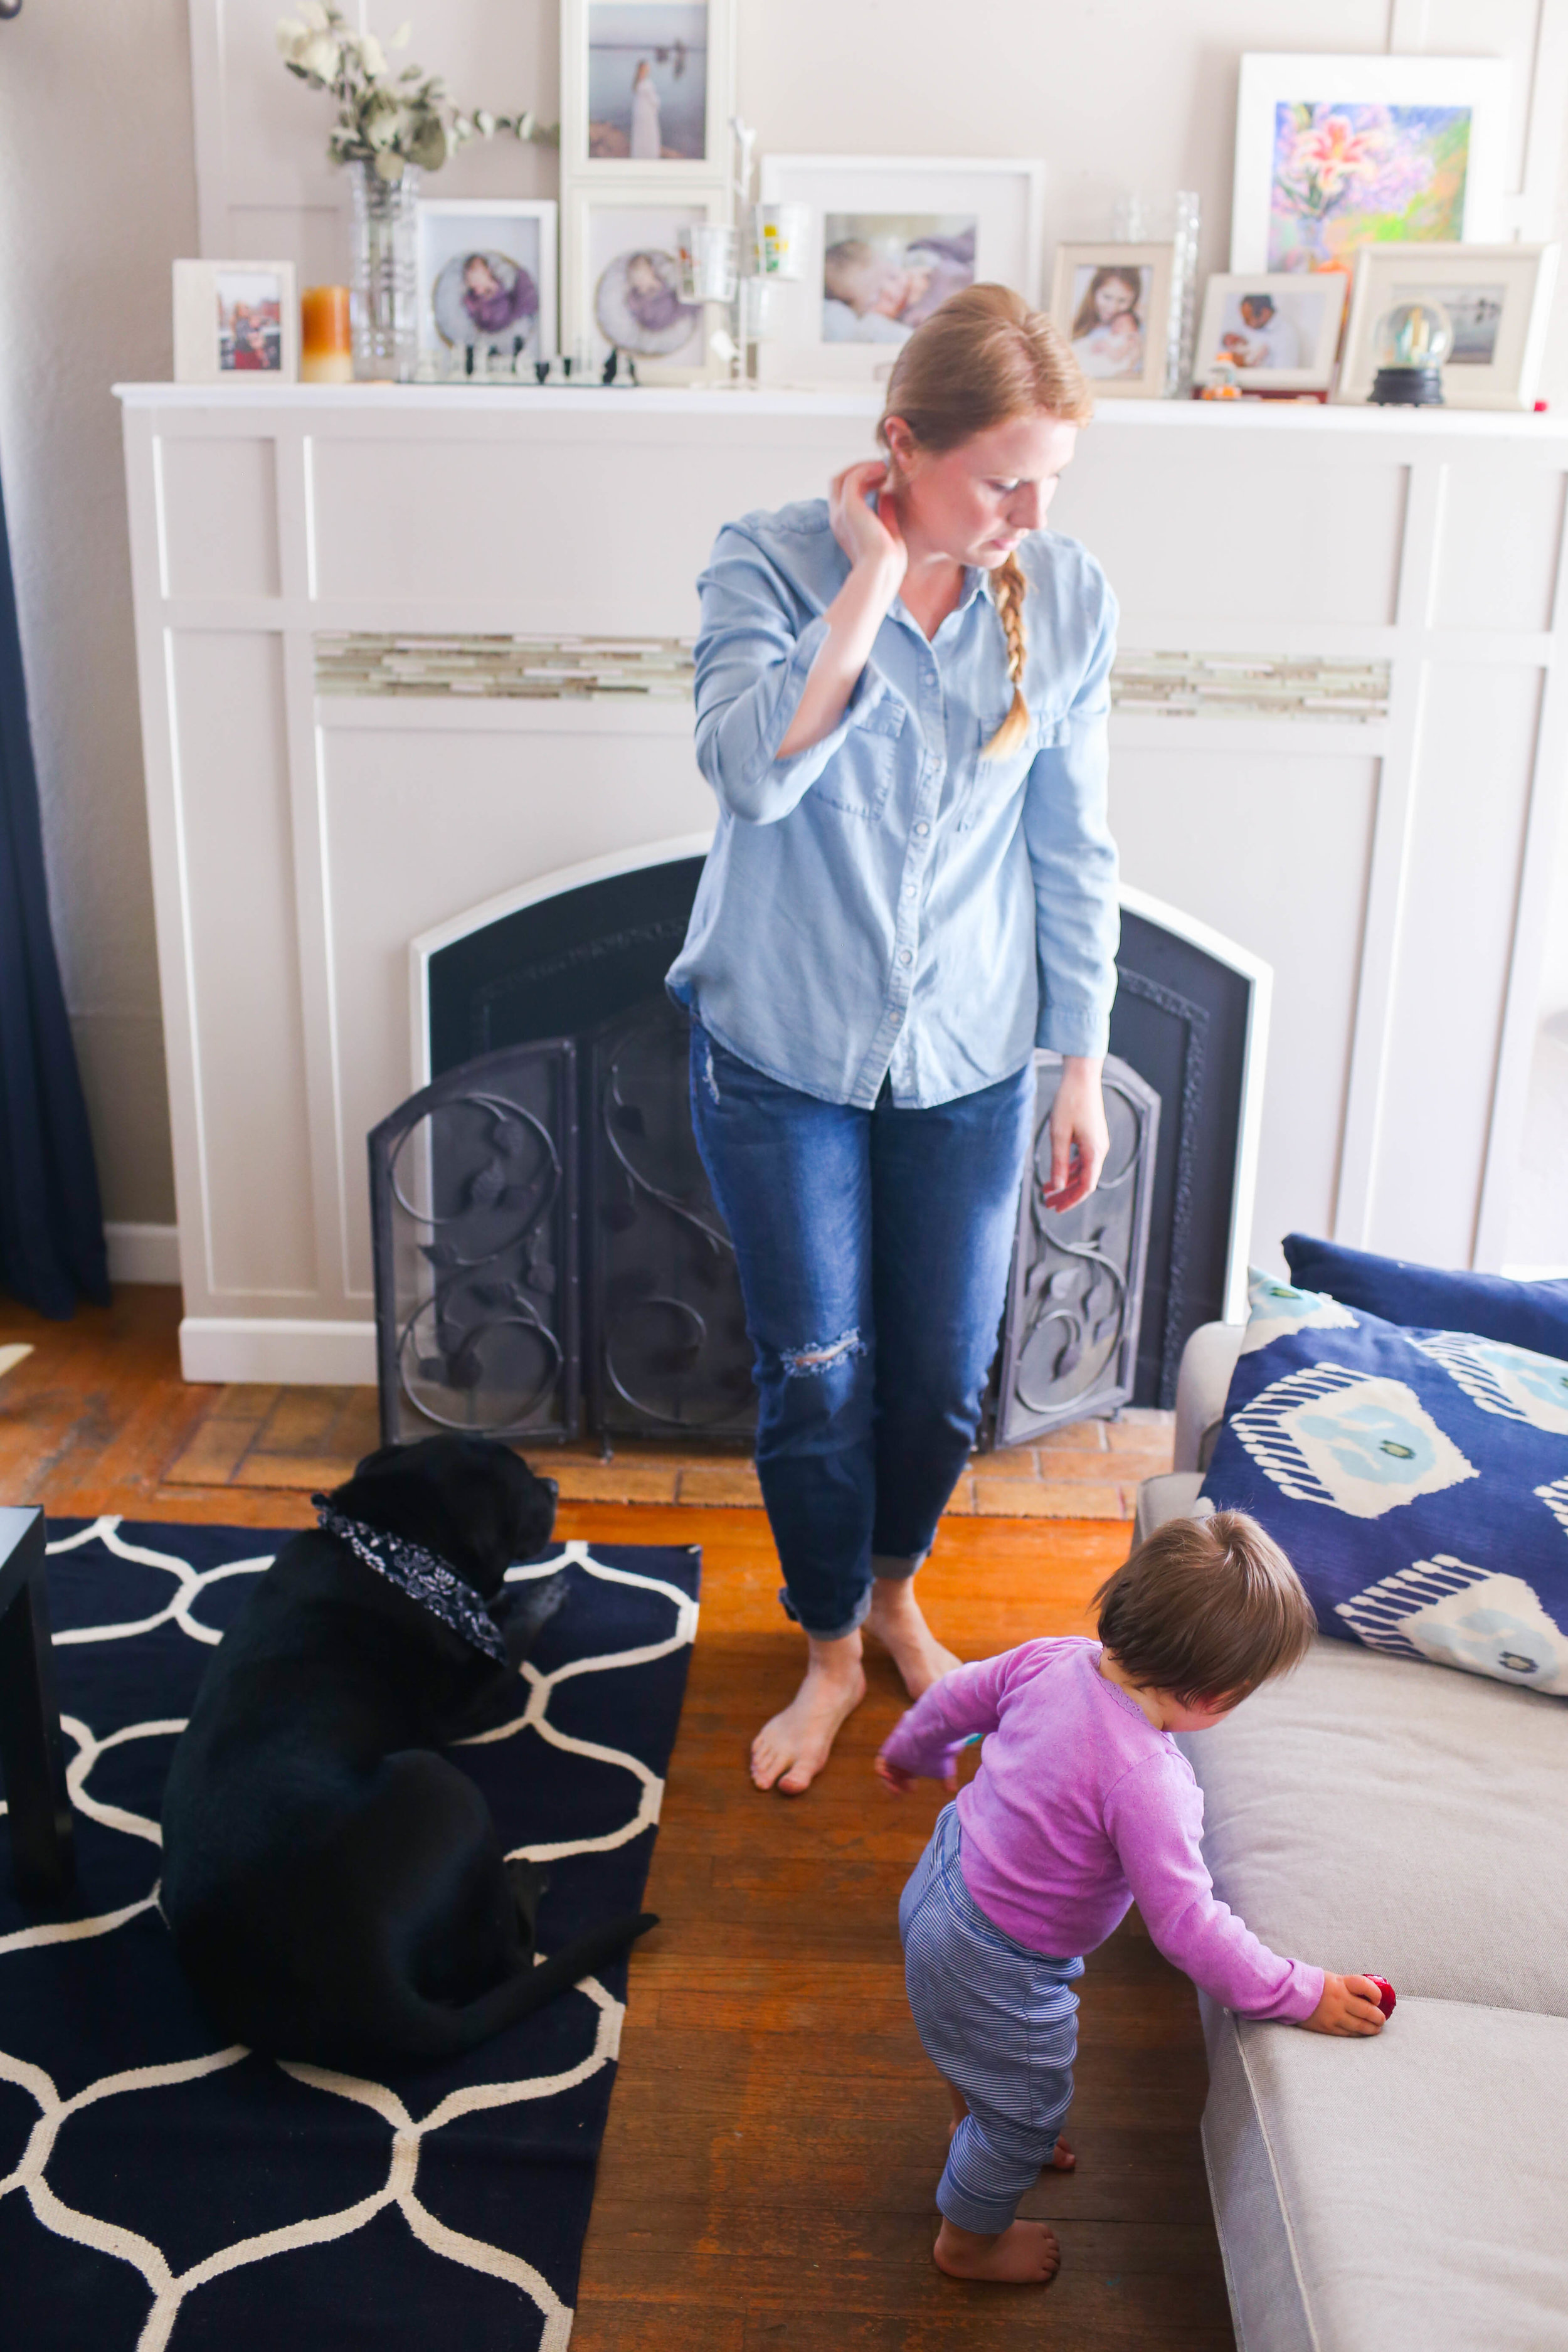 Gennifer Rose_10 Simple Ways to Prepare Your Home for a New Dog_11.jpg